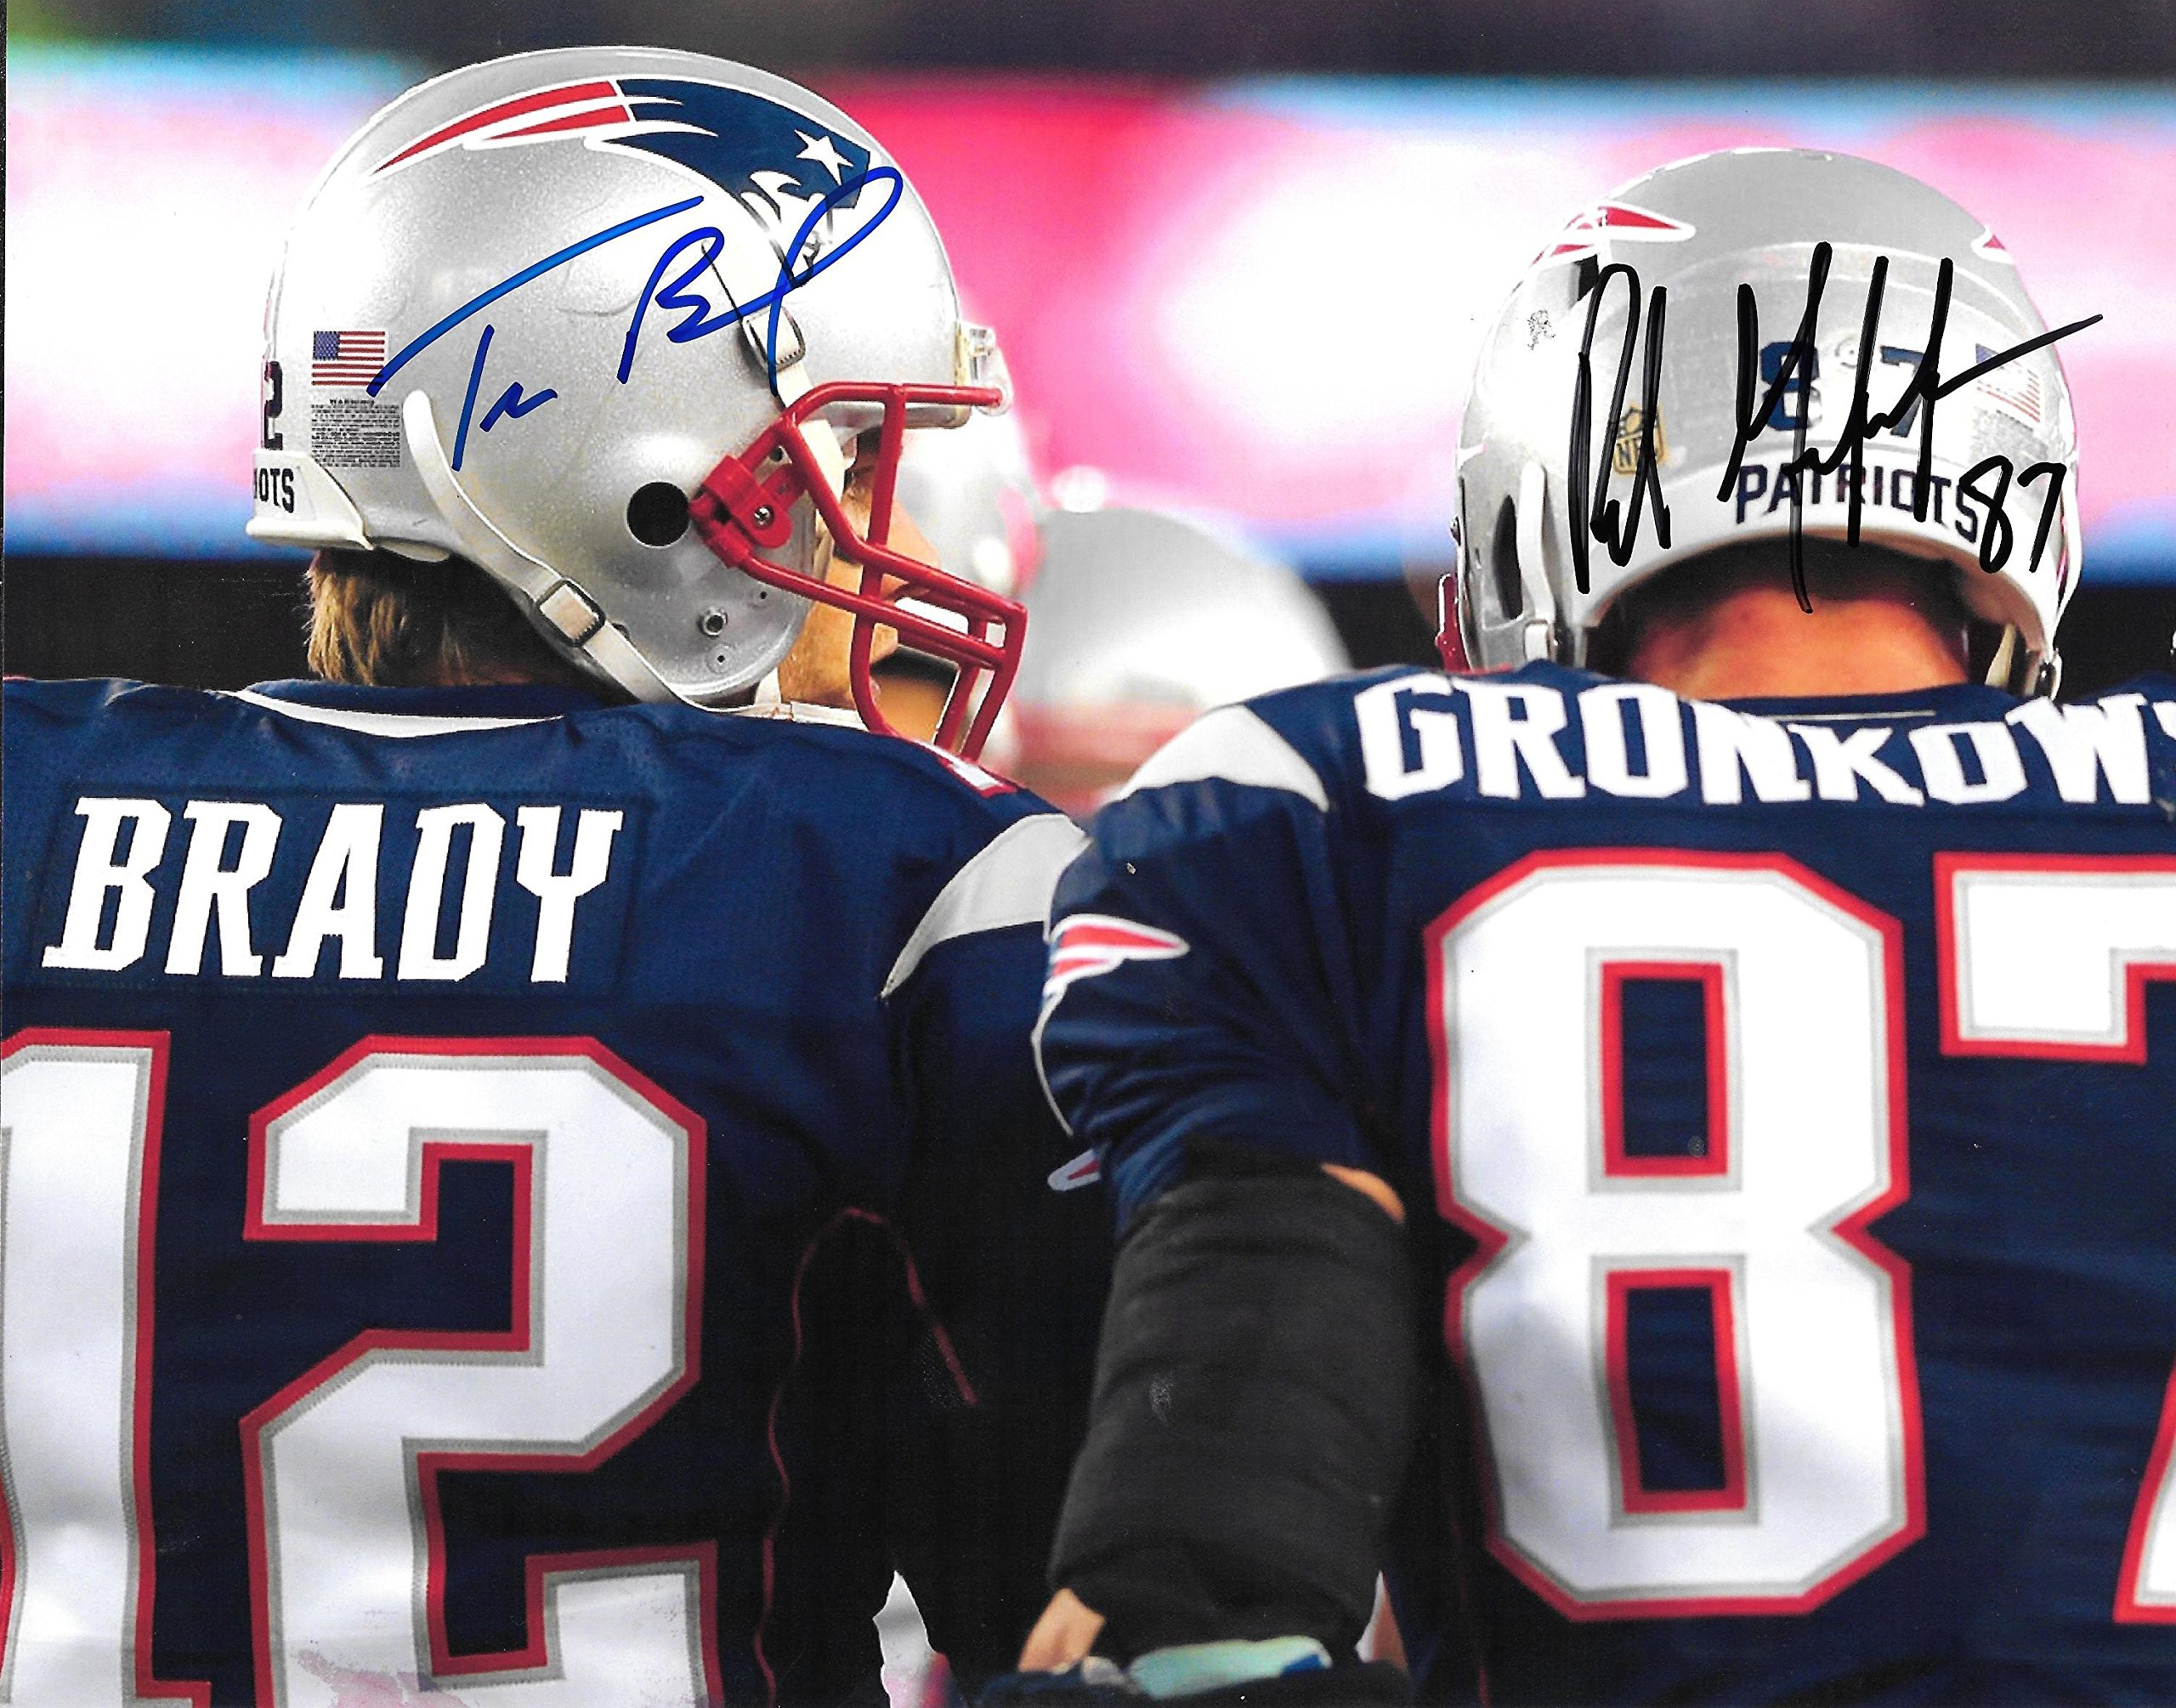 Tom Brady & Rob Gronkowski Patriots Autographed Signed 8x10 Photo COA Mint Condition